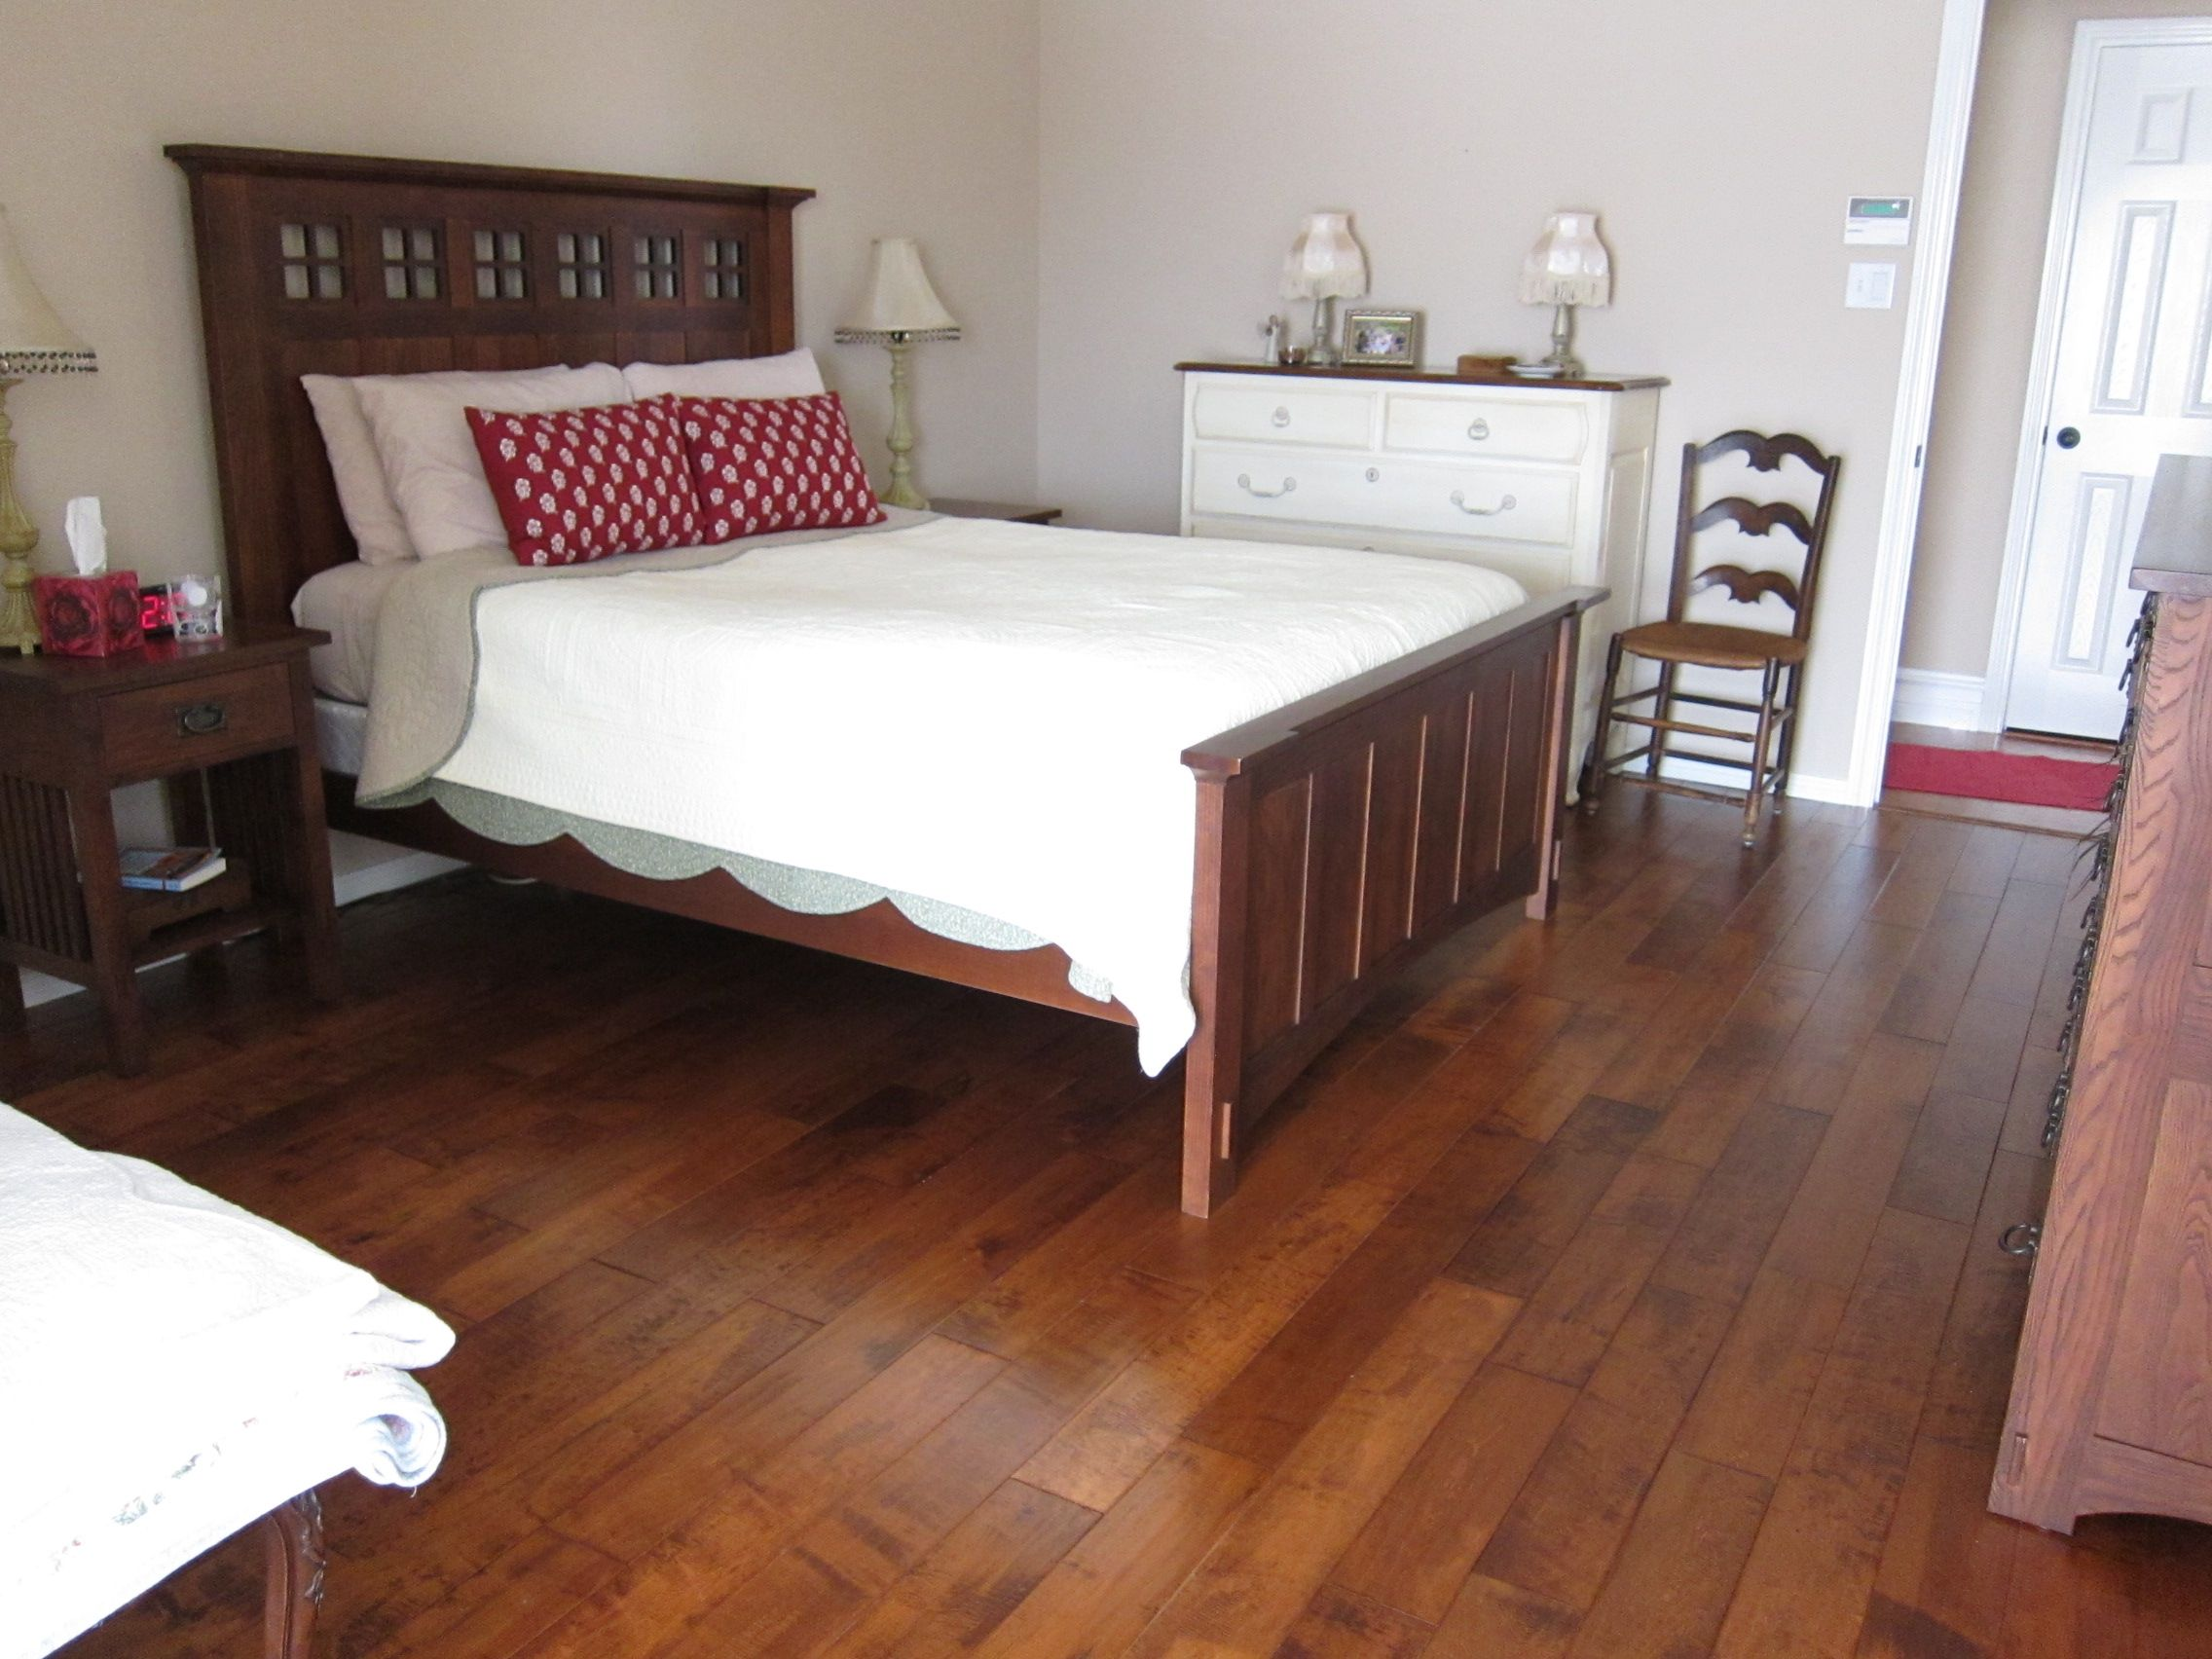 Splendid Teak Wood Master Bed Frames With White Covering Beds As